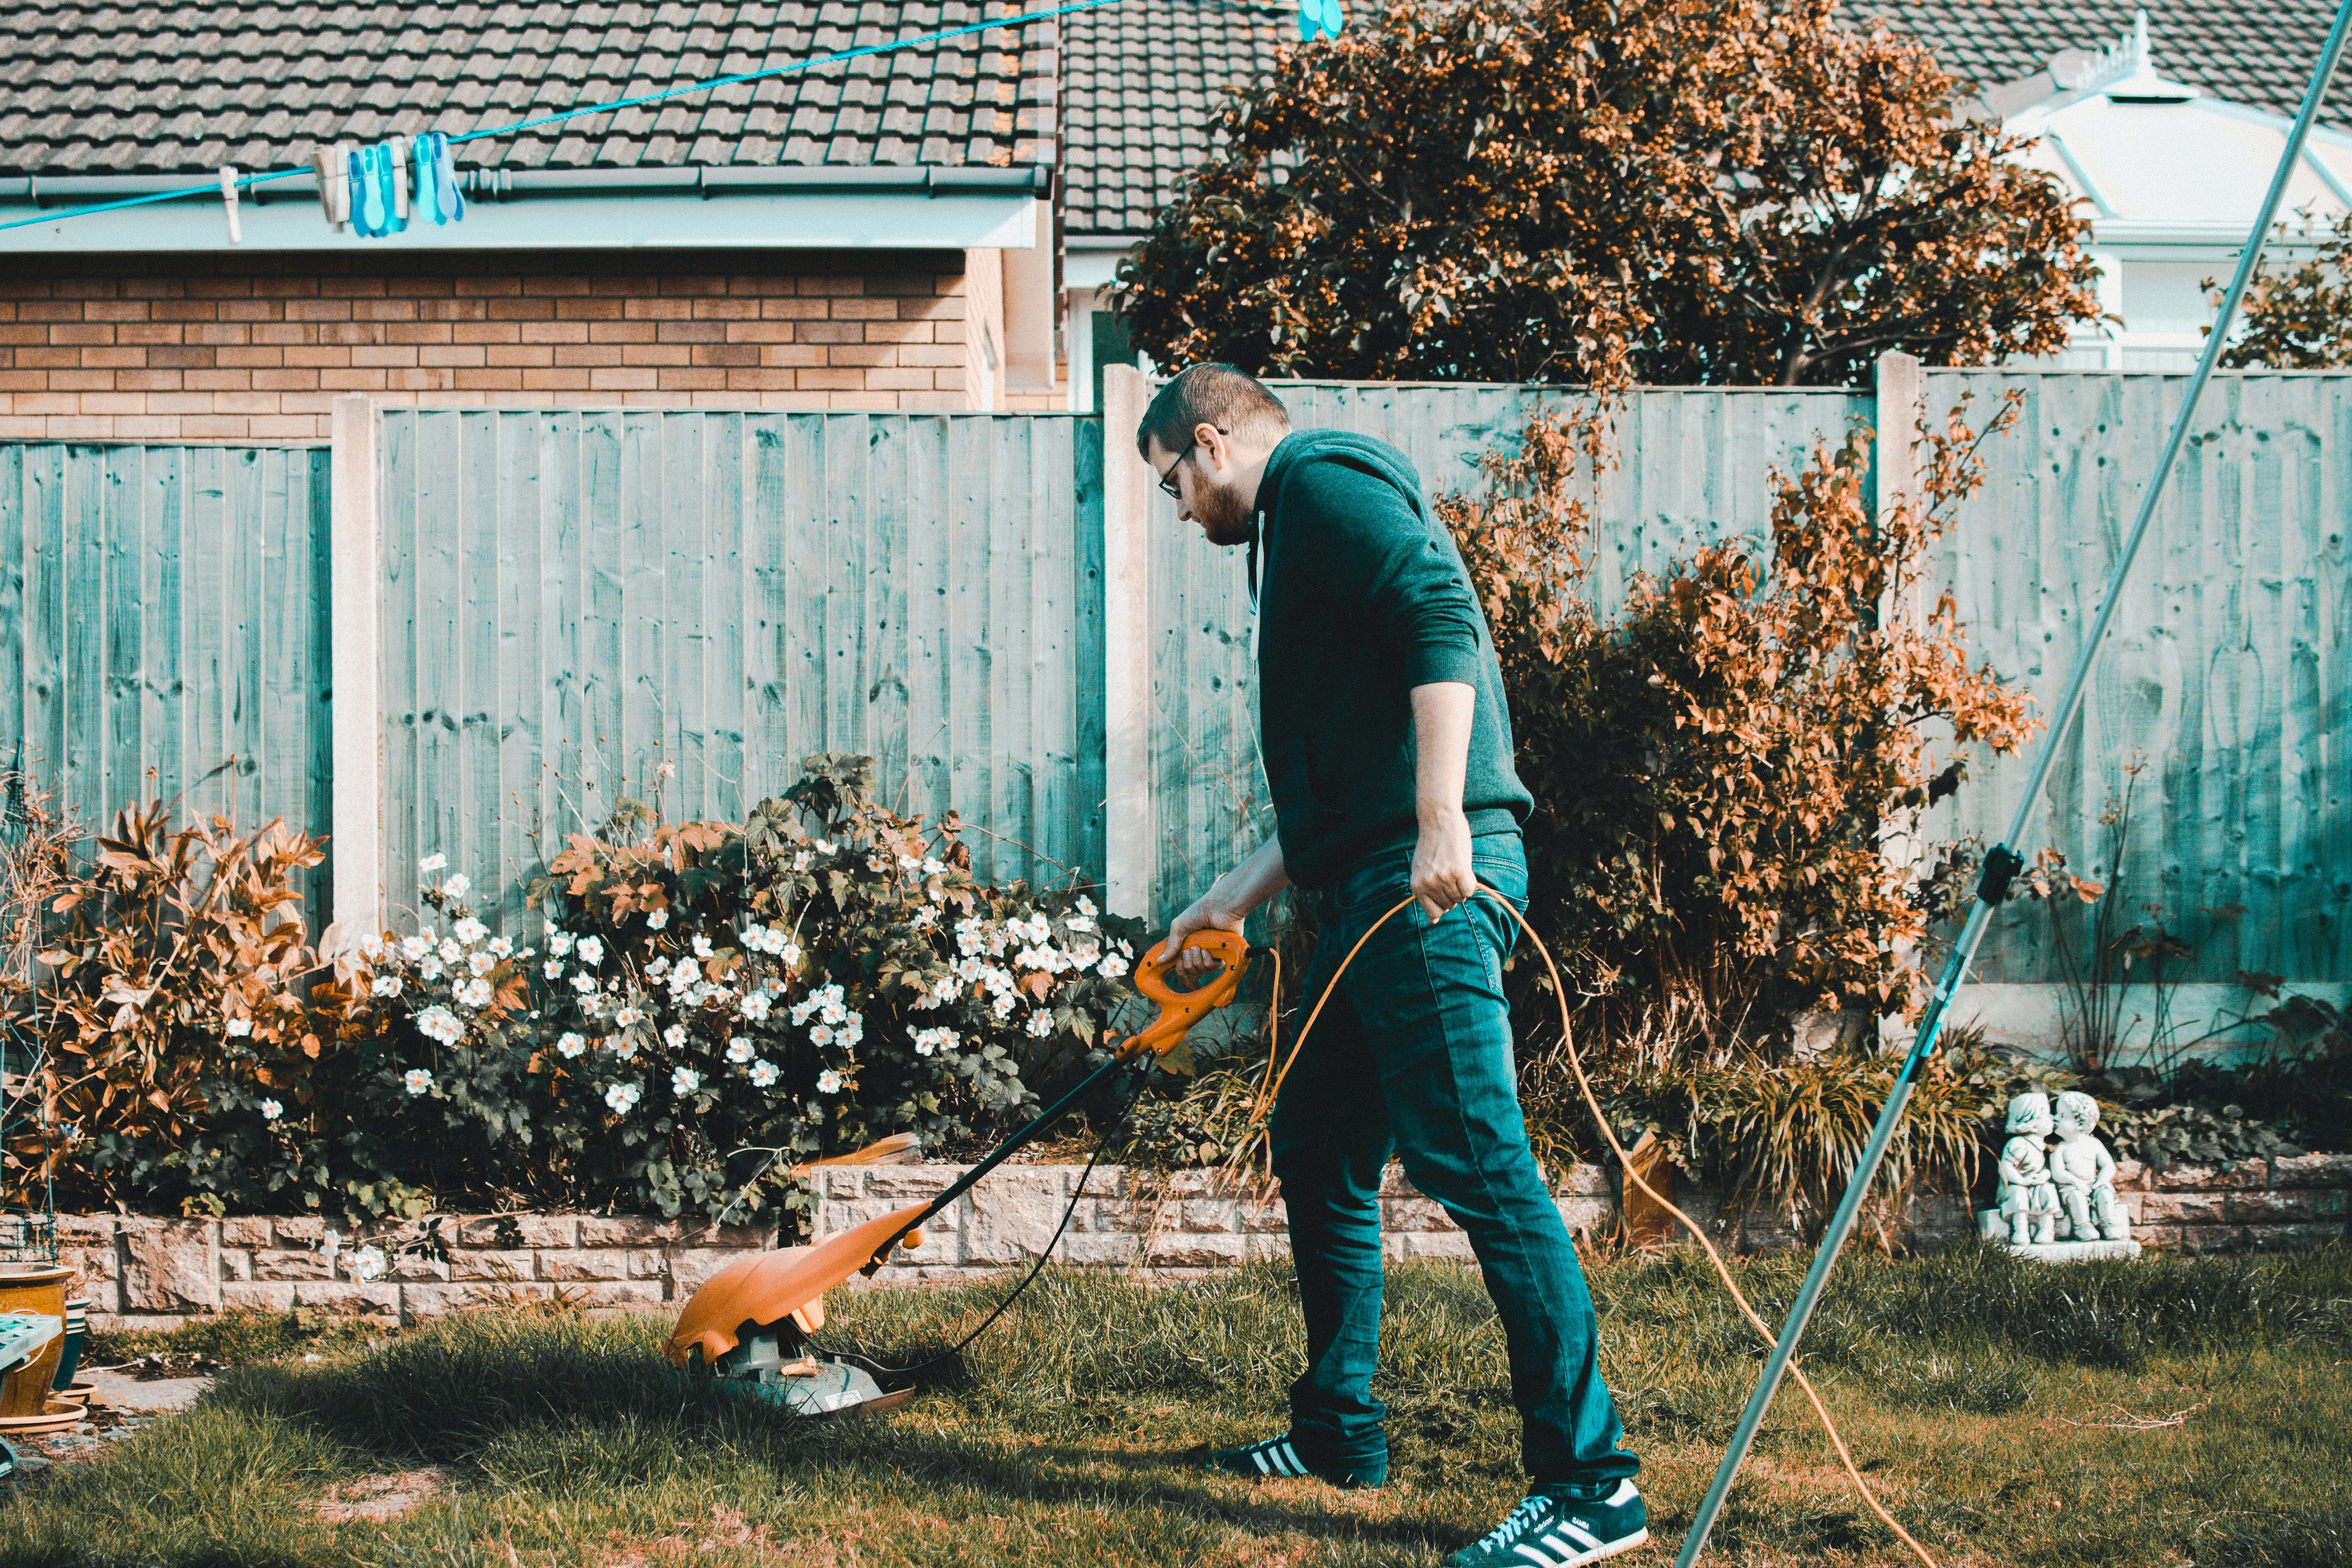 A man mowing the lawn   Photo: Pixabay